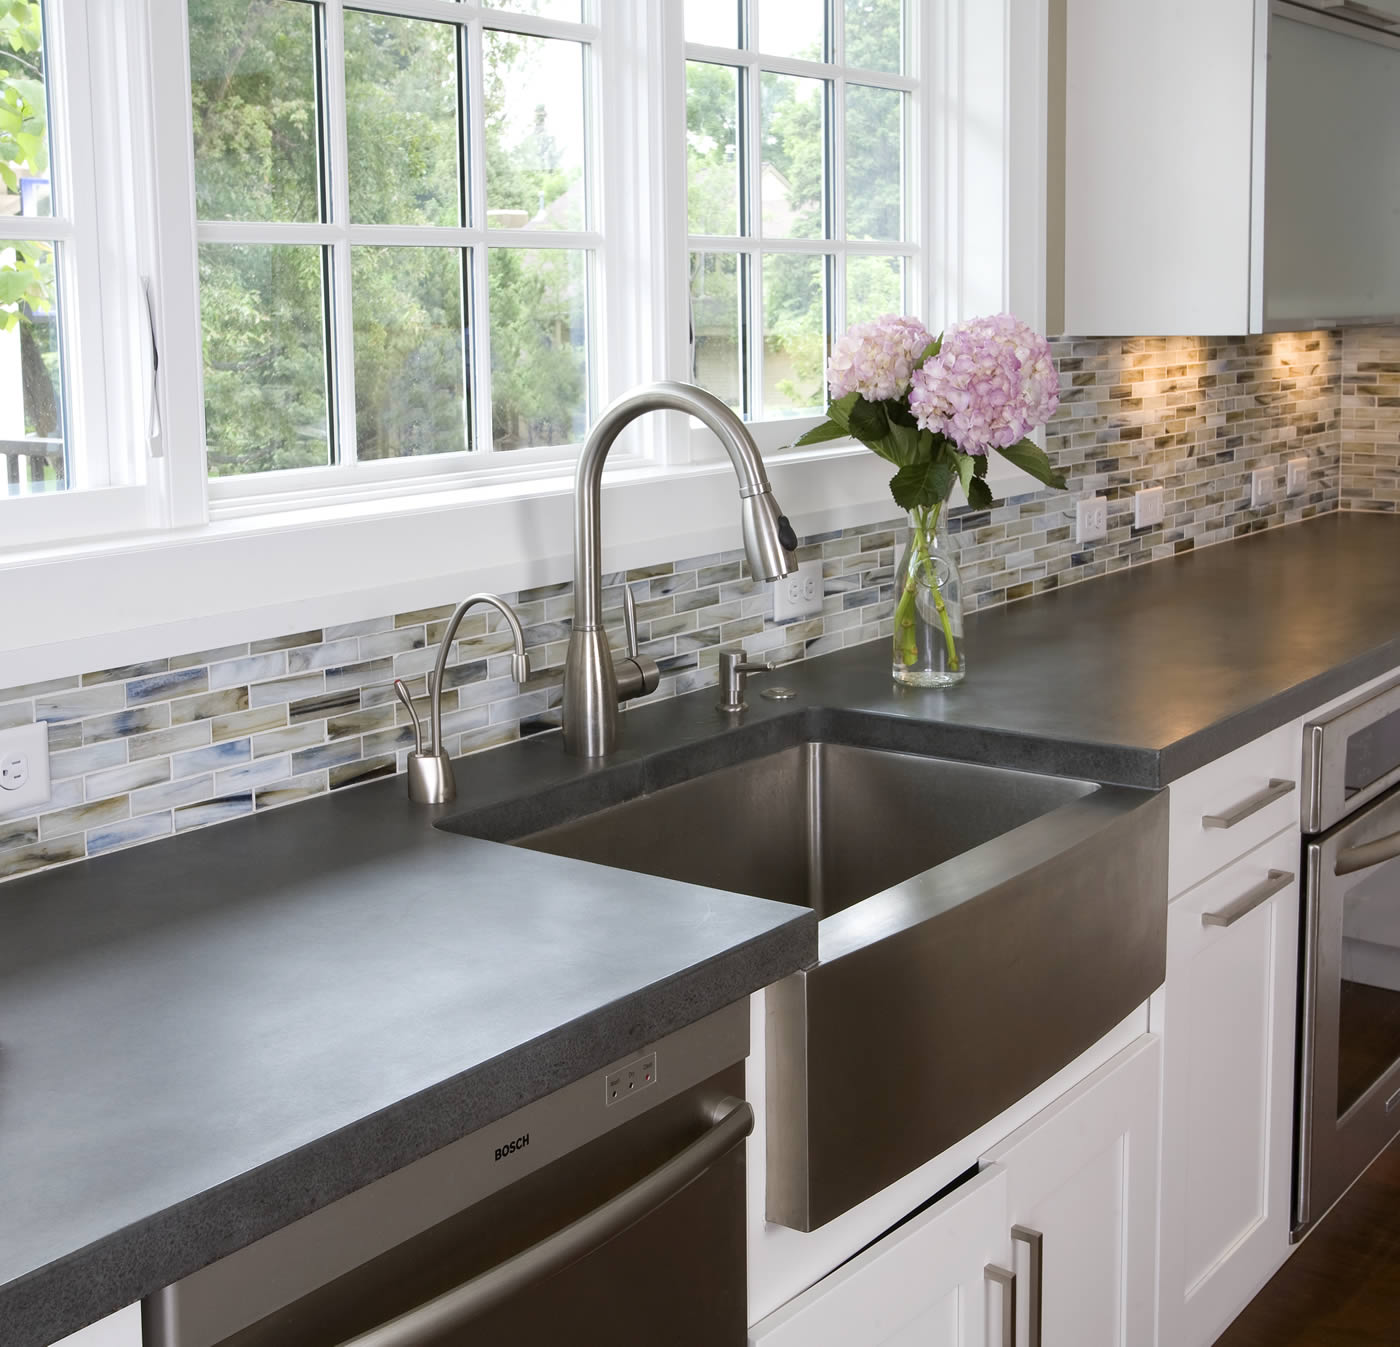 single rectangle stainless steel apron sink on white kitchen cabinet with silver handle and grey countertop plus silver kitchen faucet under the white window for kitchen decor ideas